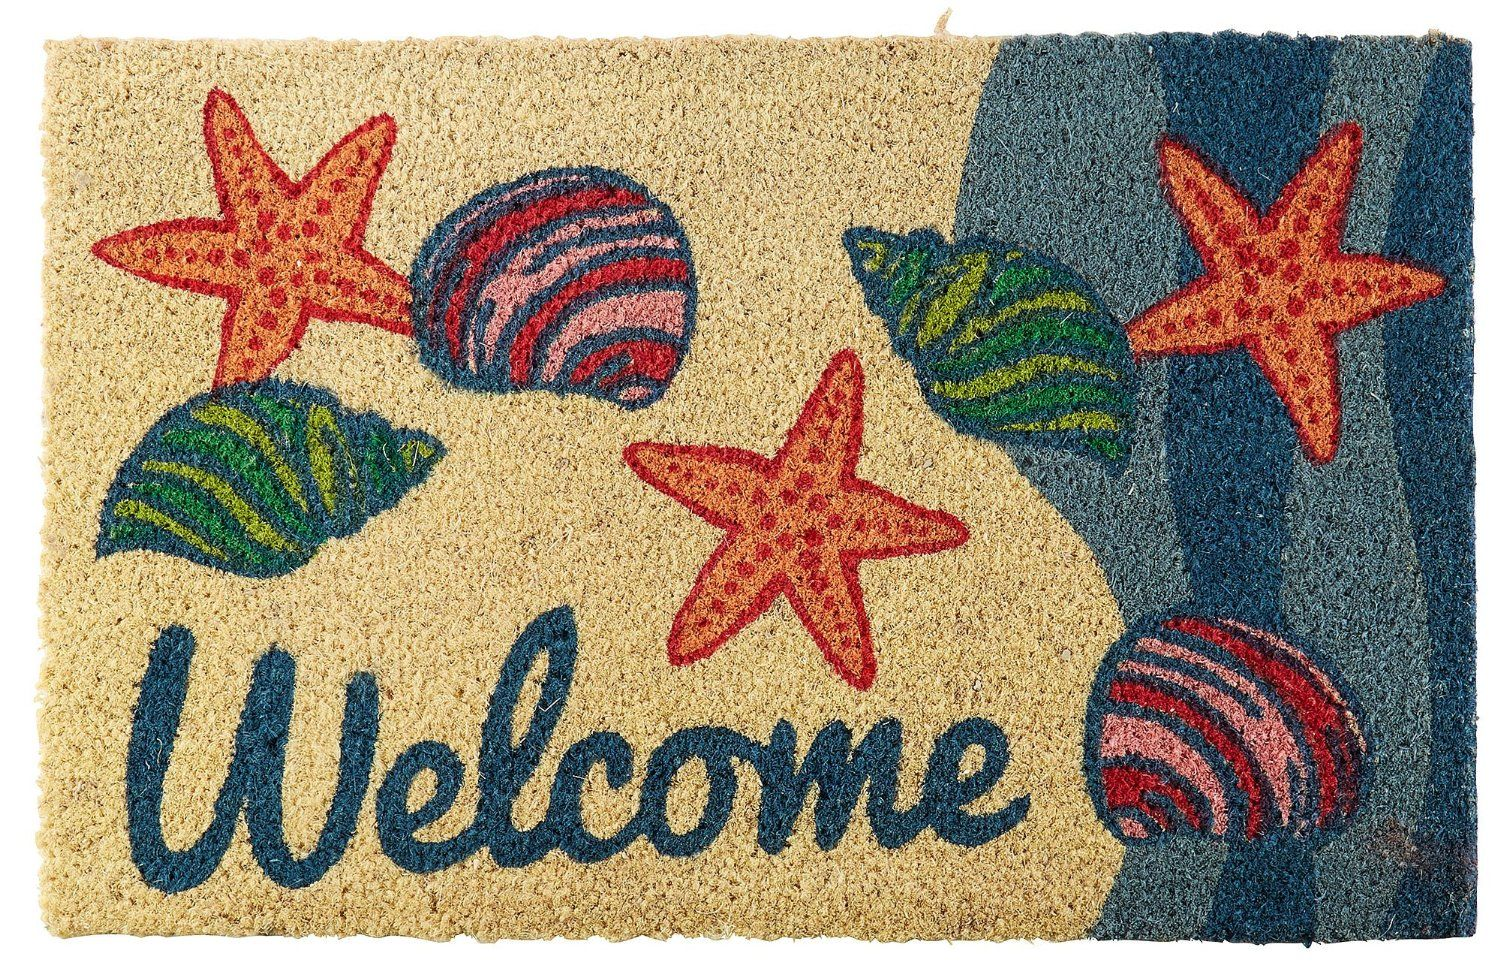 Awesome Outdoor Beach Doormats! Find Beachfront Decoru0027s List Of Beach,  Nautical, Tropical, And Coastal Doormats For Your Beach Home.